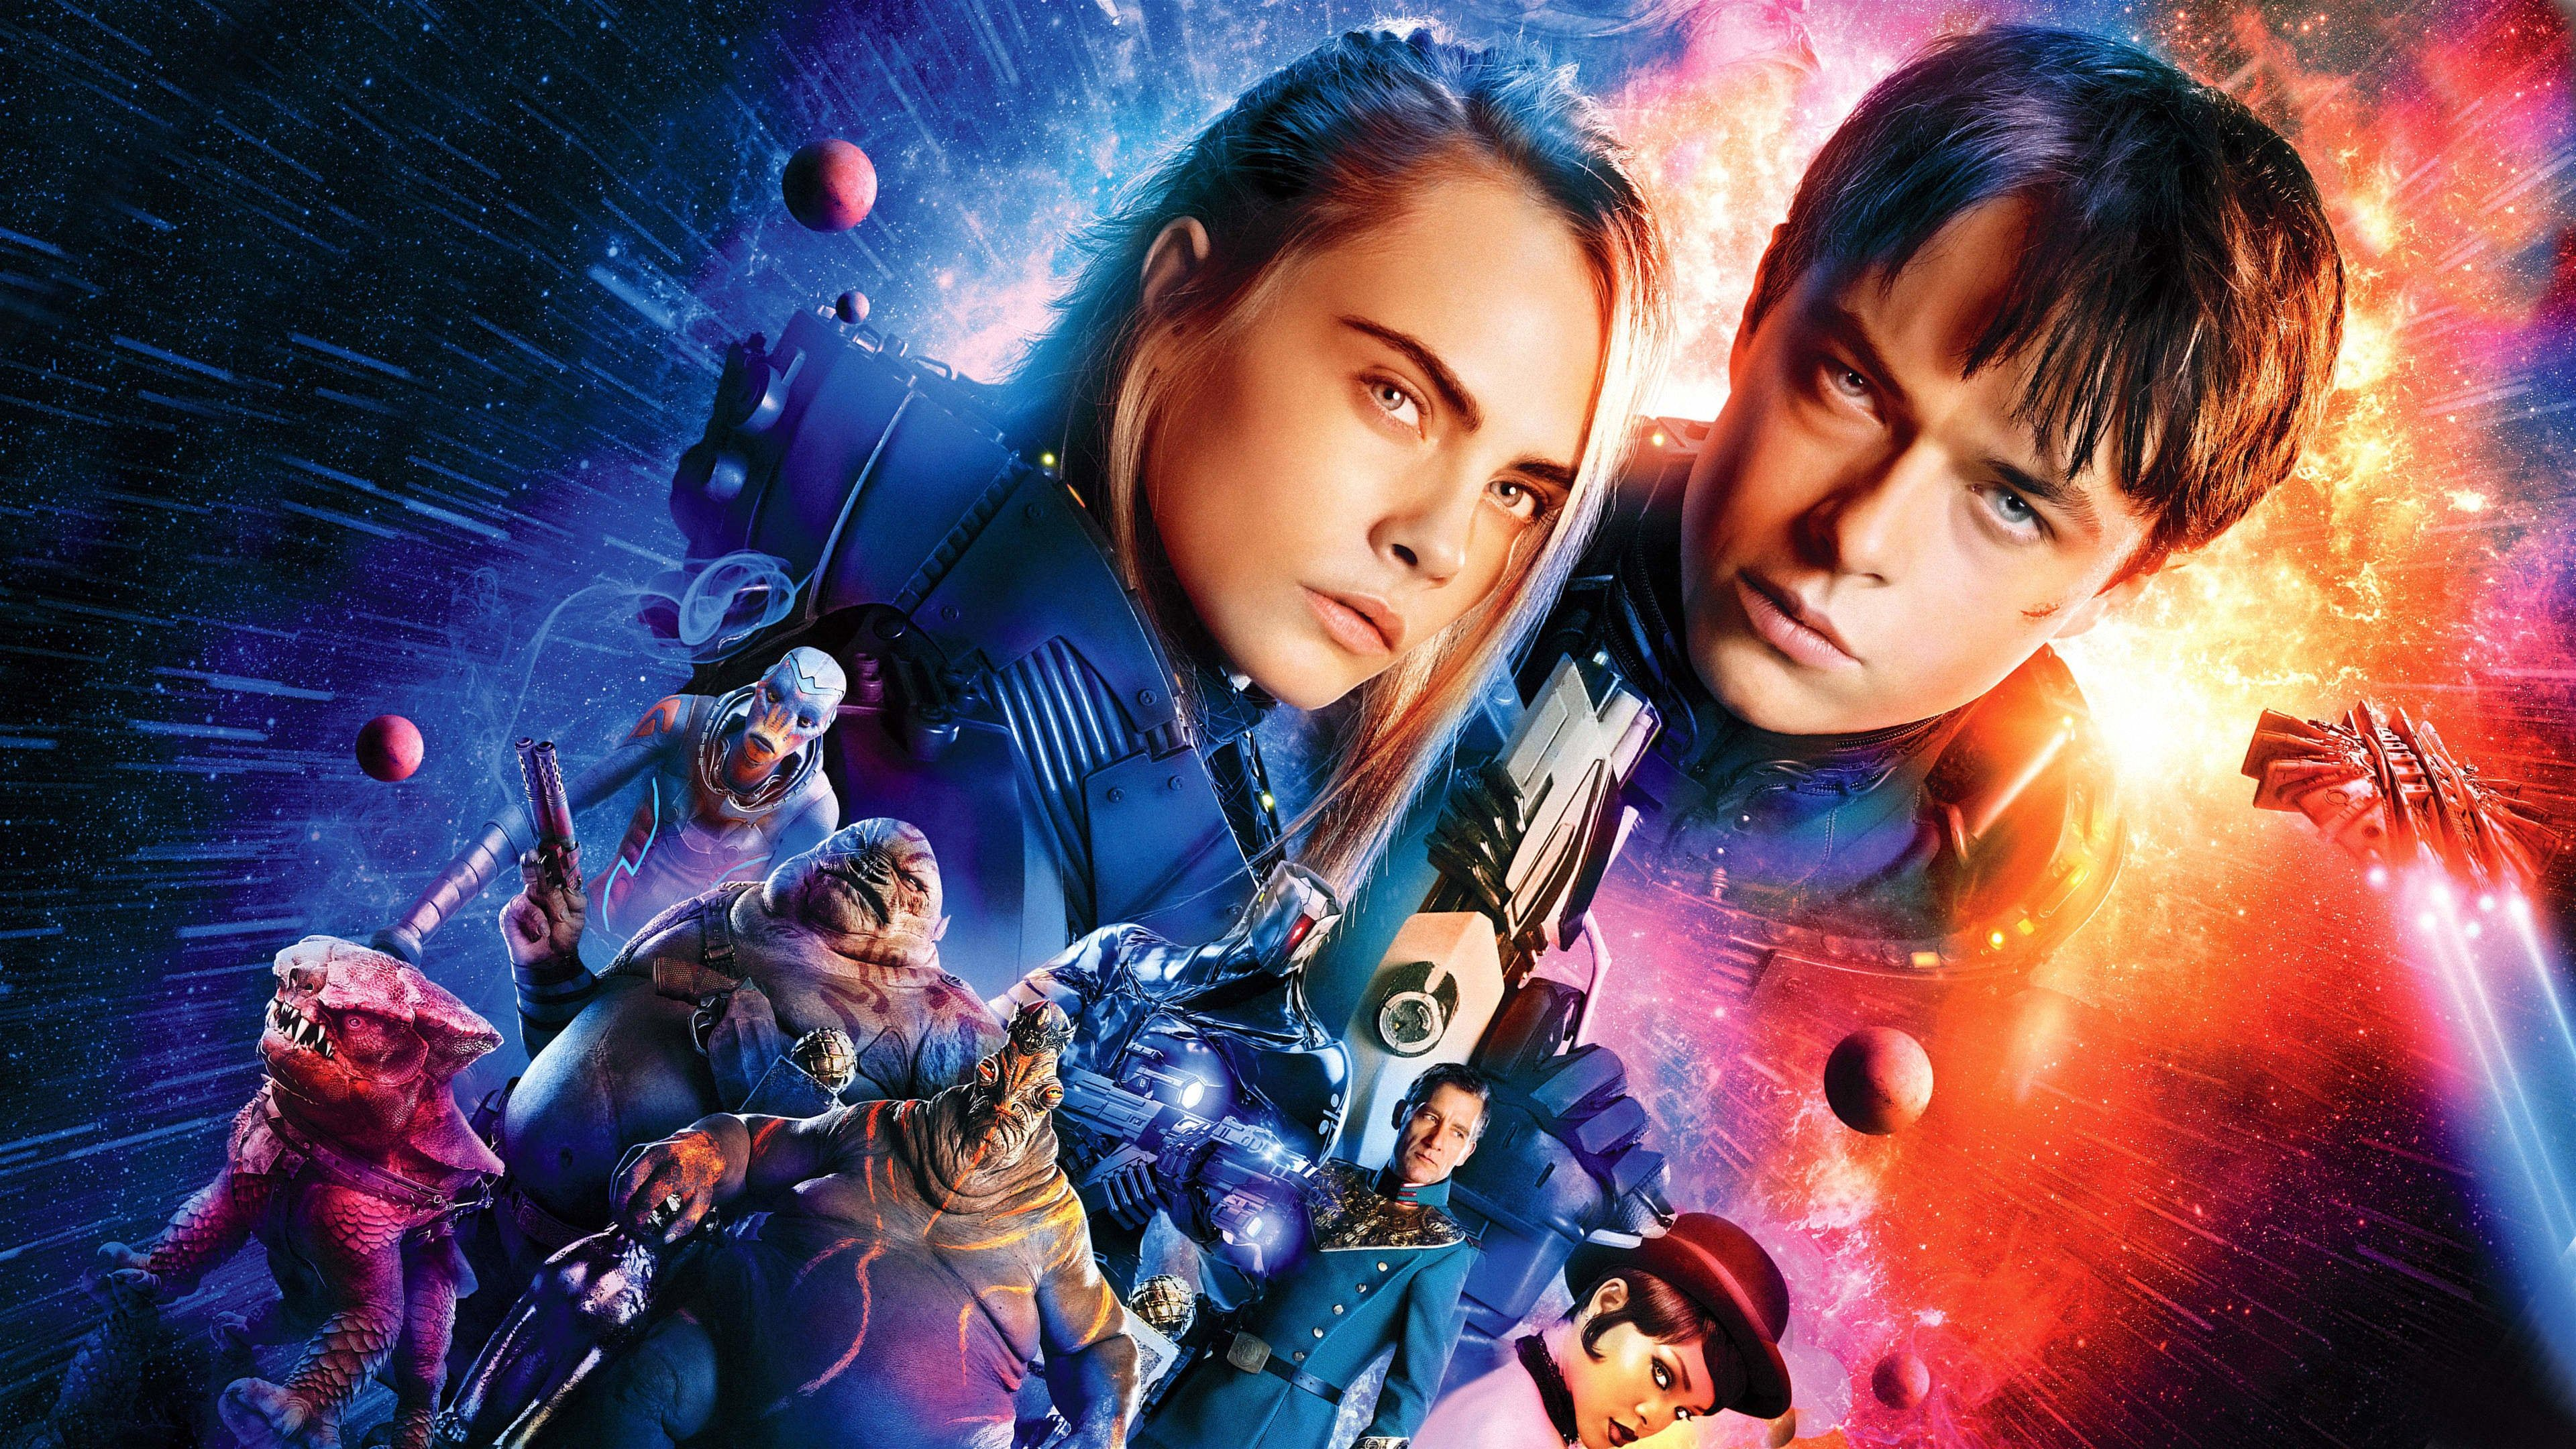 Valerian And The City Of A Thousand Planets Full Movies Online Free Free Movies Online Streaming Movies Online